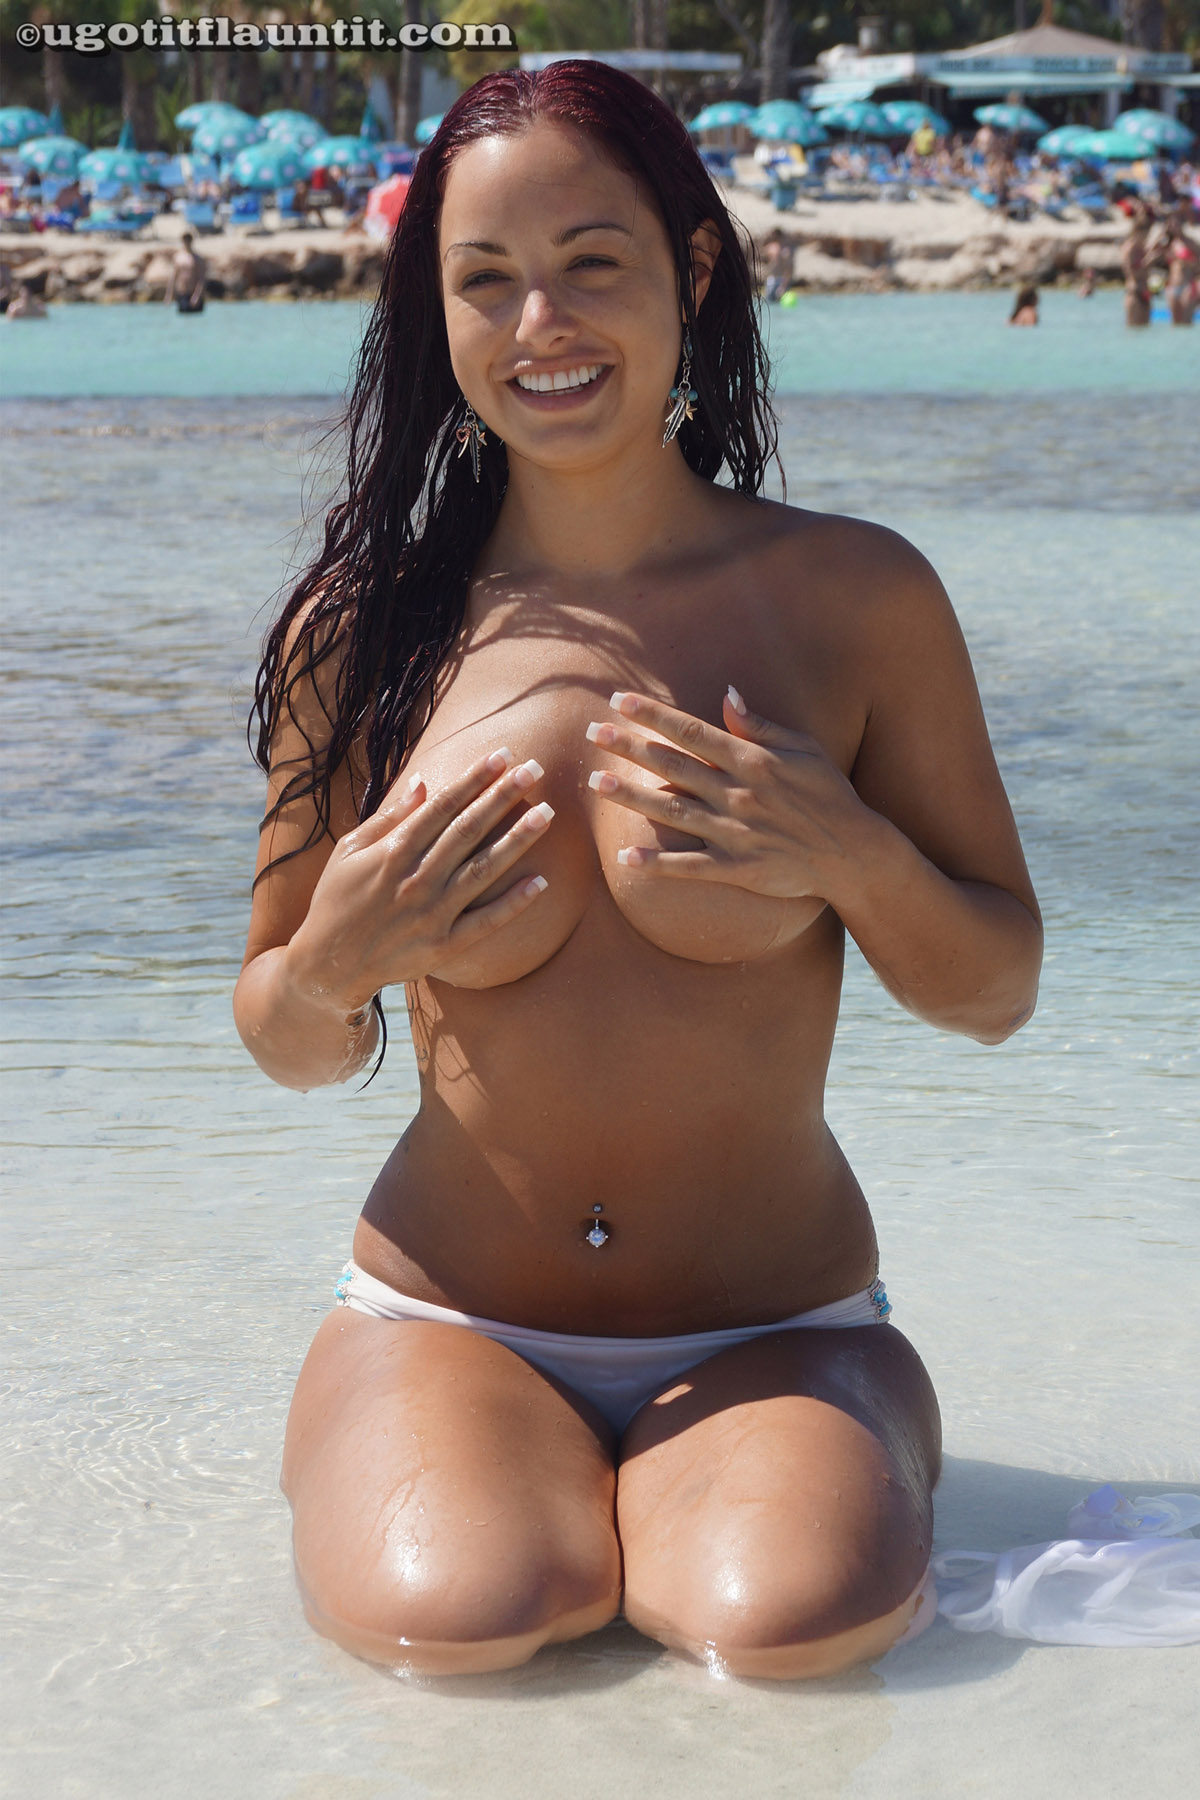 Bikini beach boobs